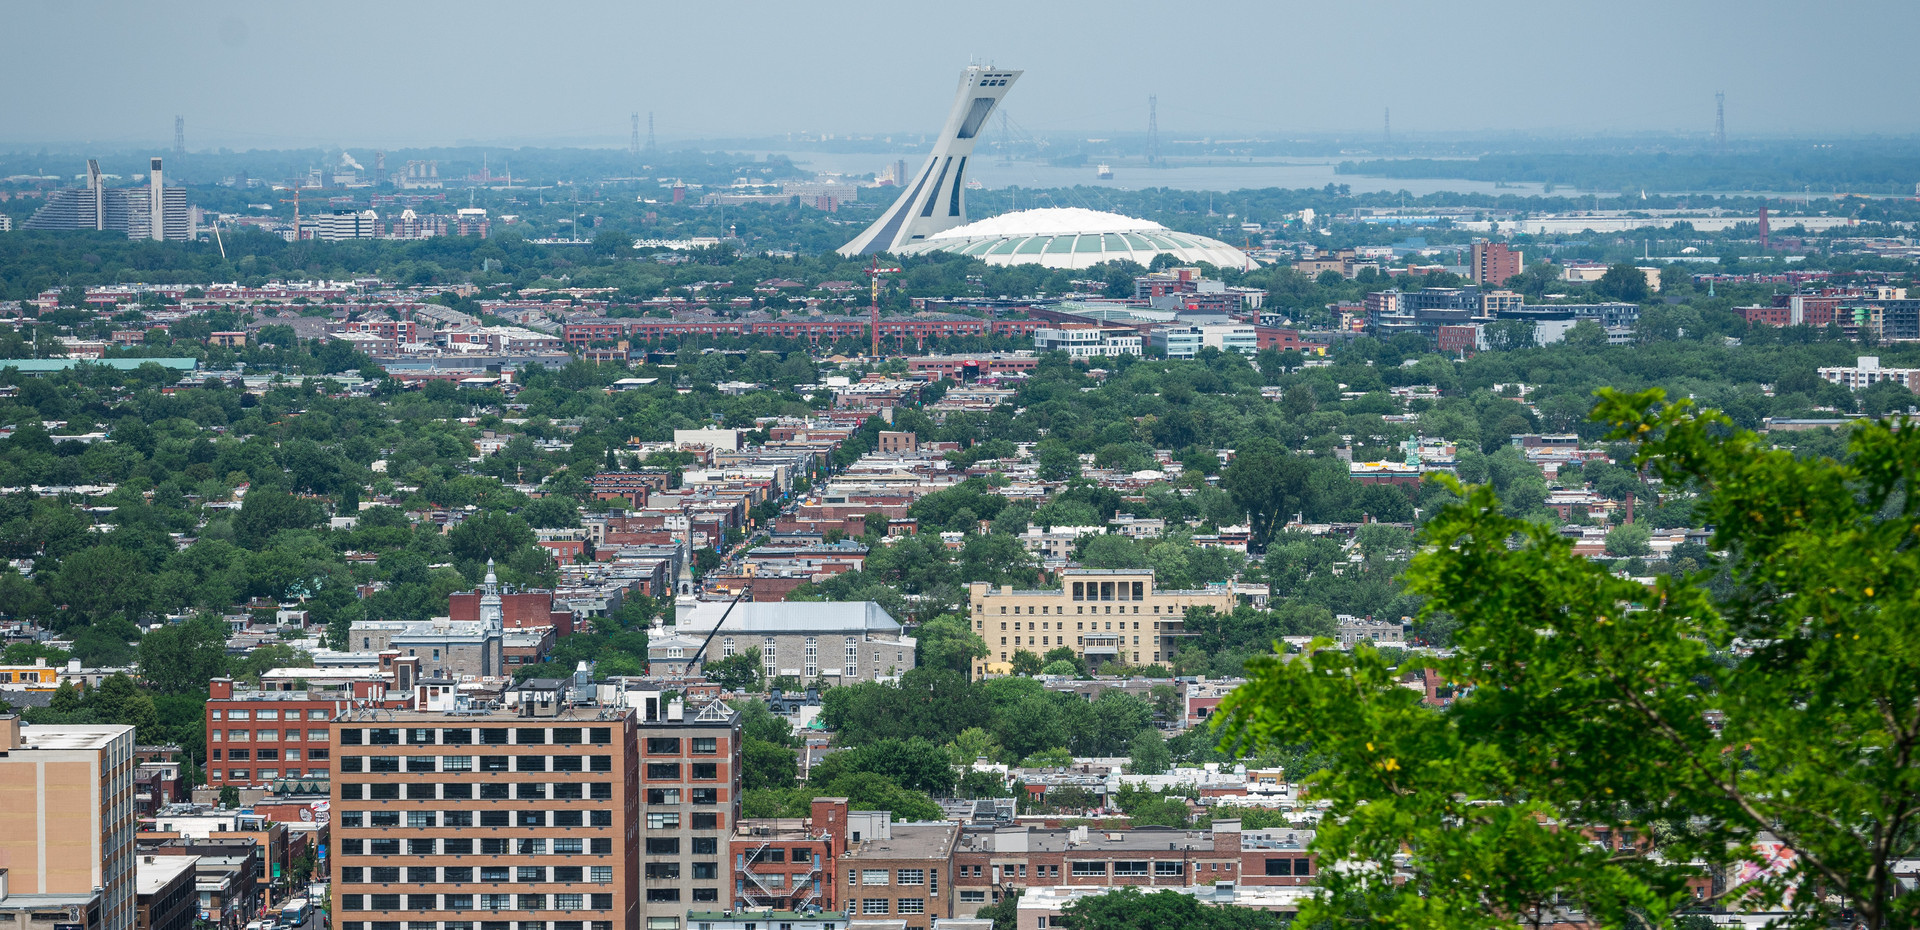 Gaze at the city and historic Olympic stadium from Mount Royal